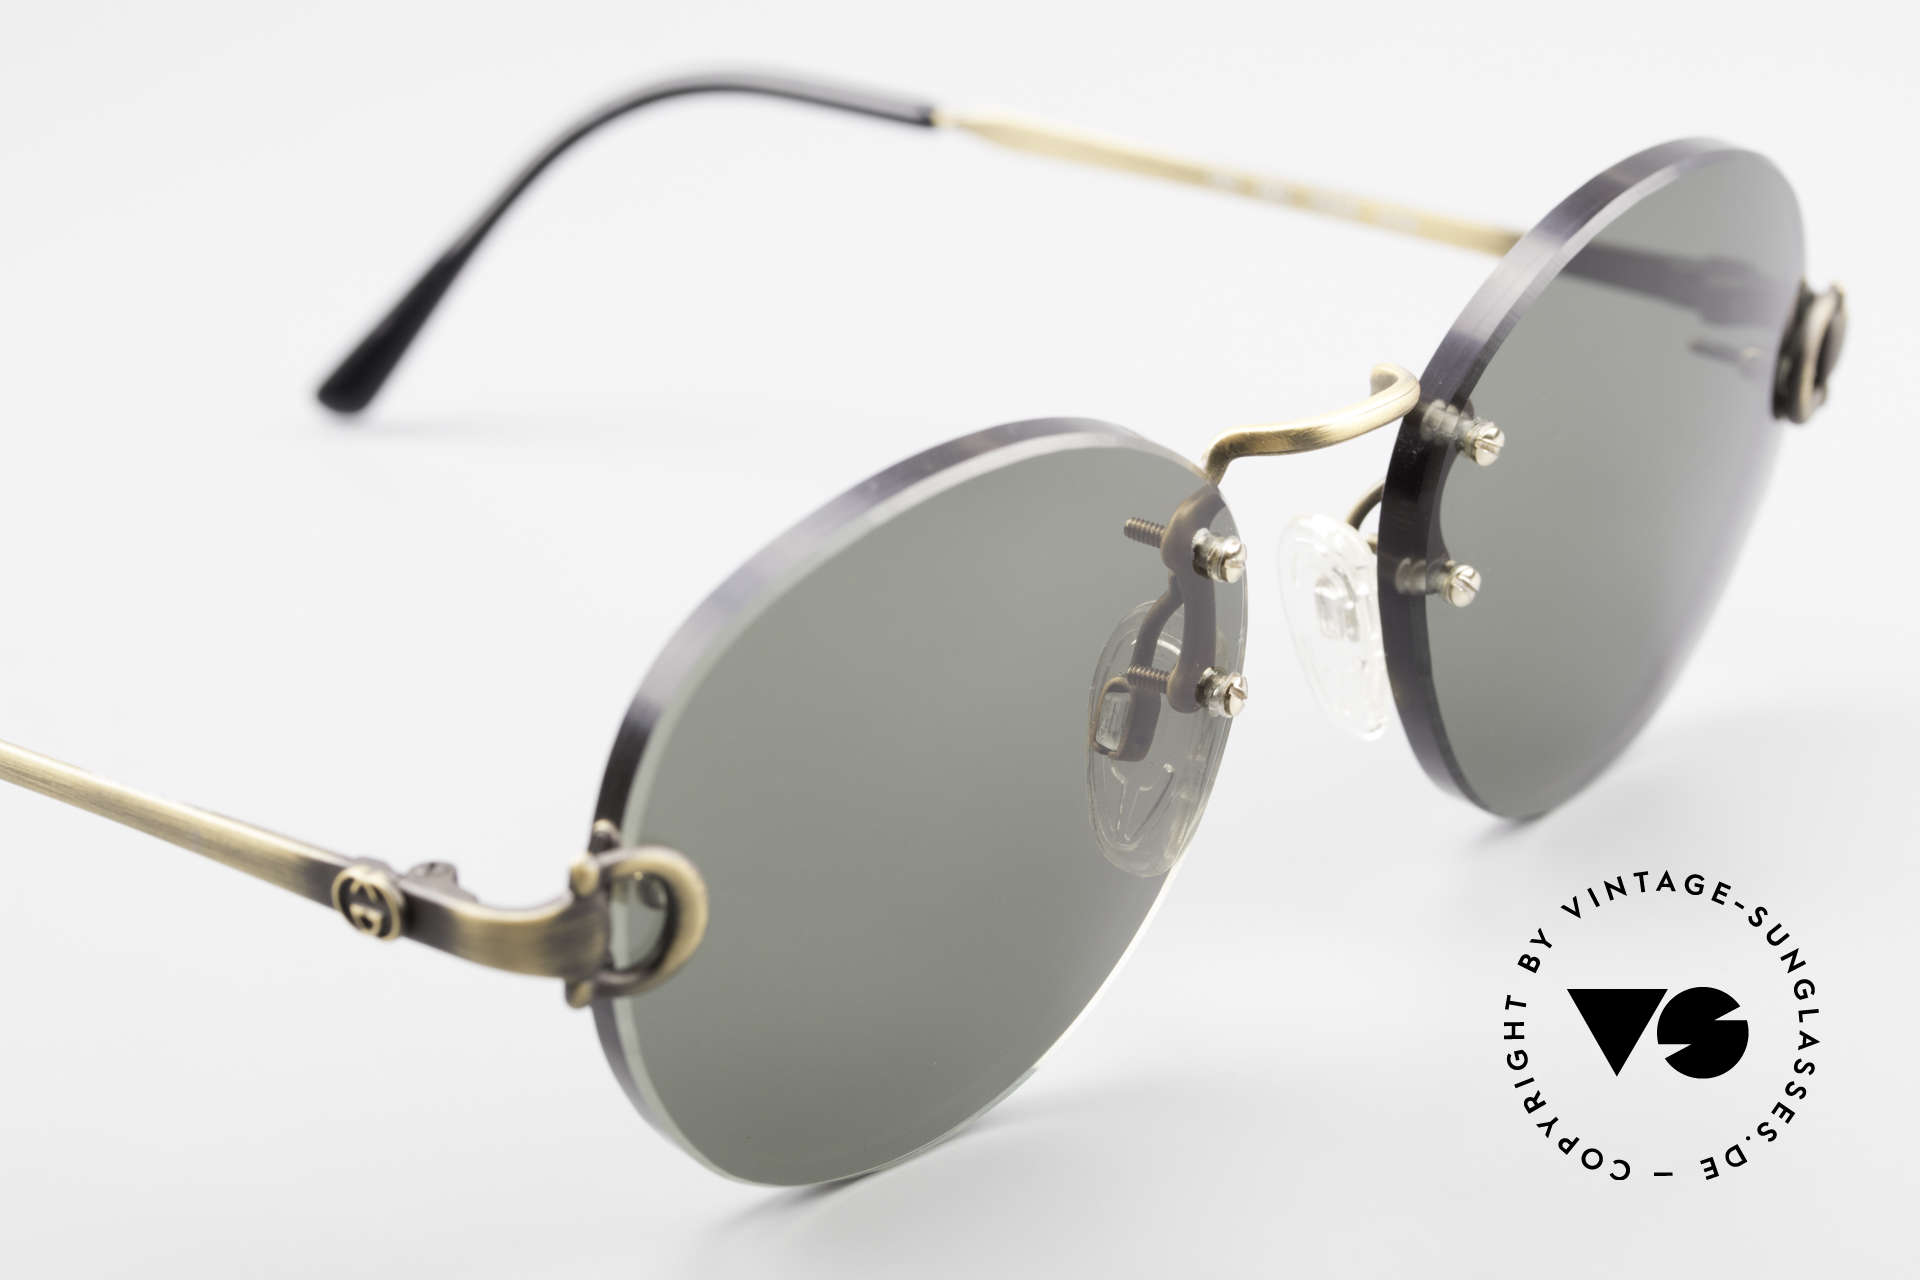 Gucci 2223 Rimless Round Sunglasses, sun lenses can be replaced with optical (sun) lenses, Made for Men and Women